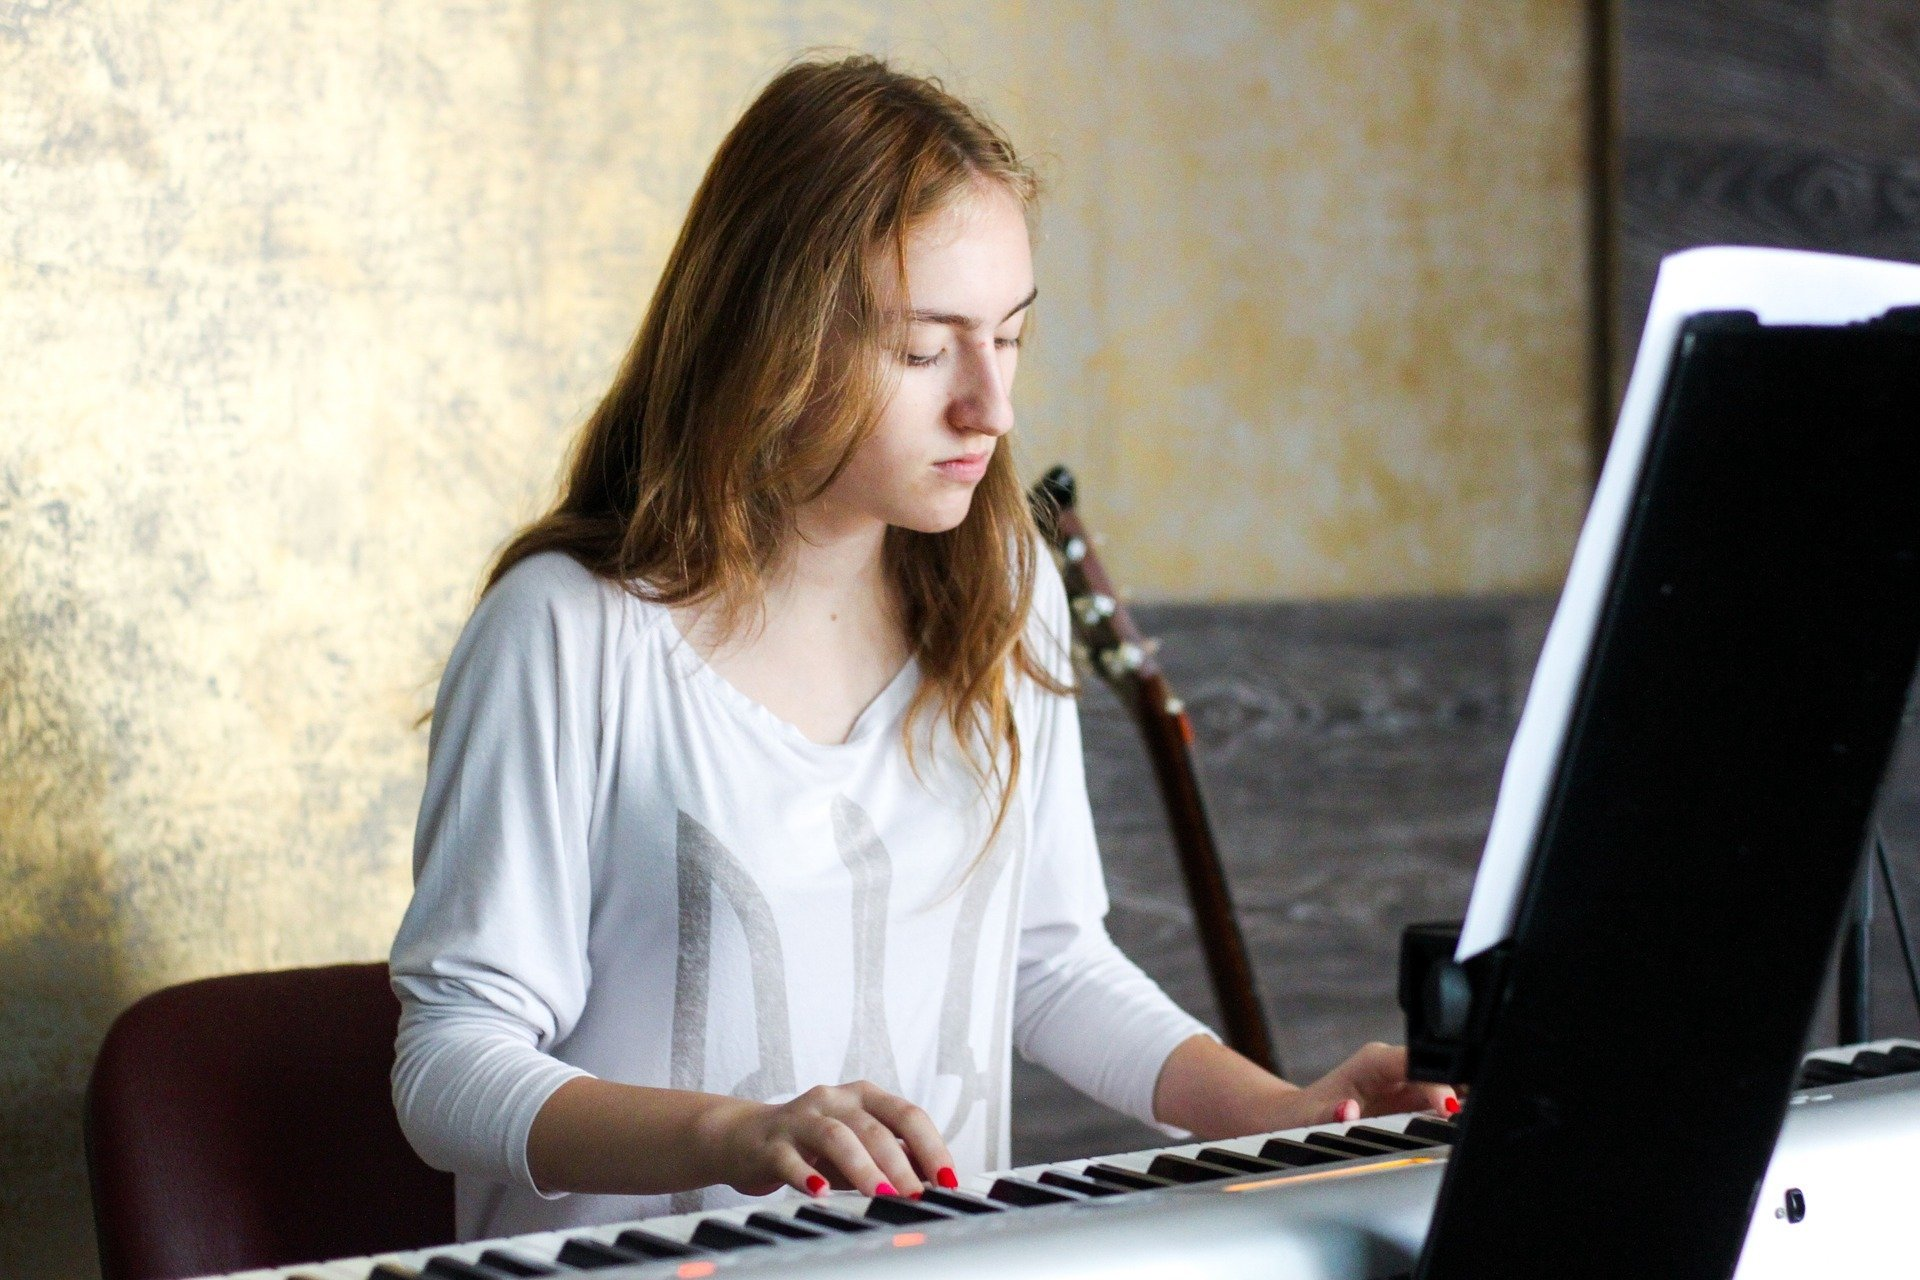 WHAT TO EXPECT FROM PIANO LESSONS